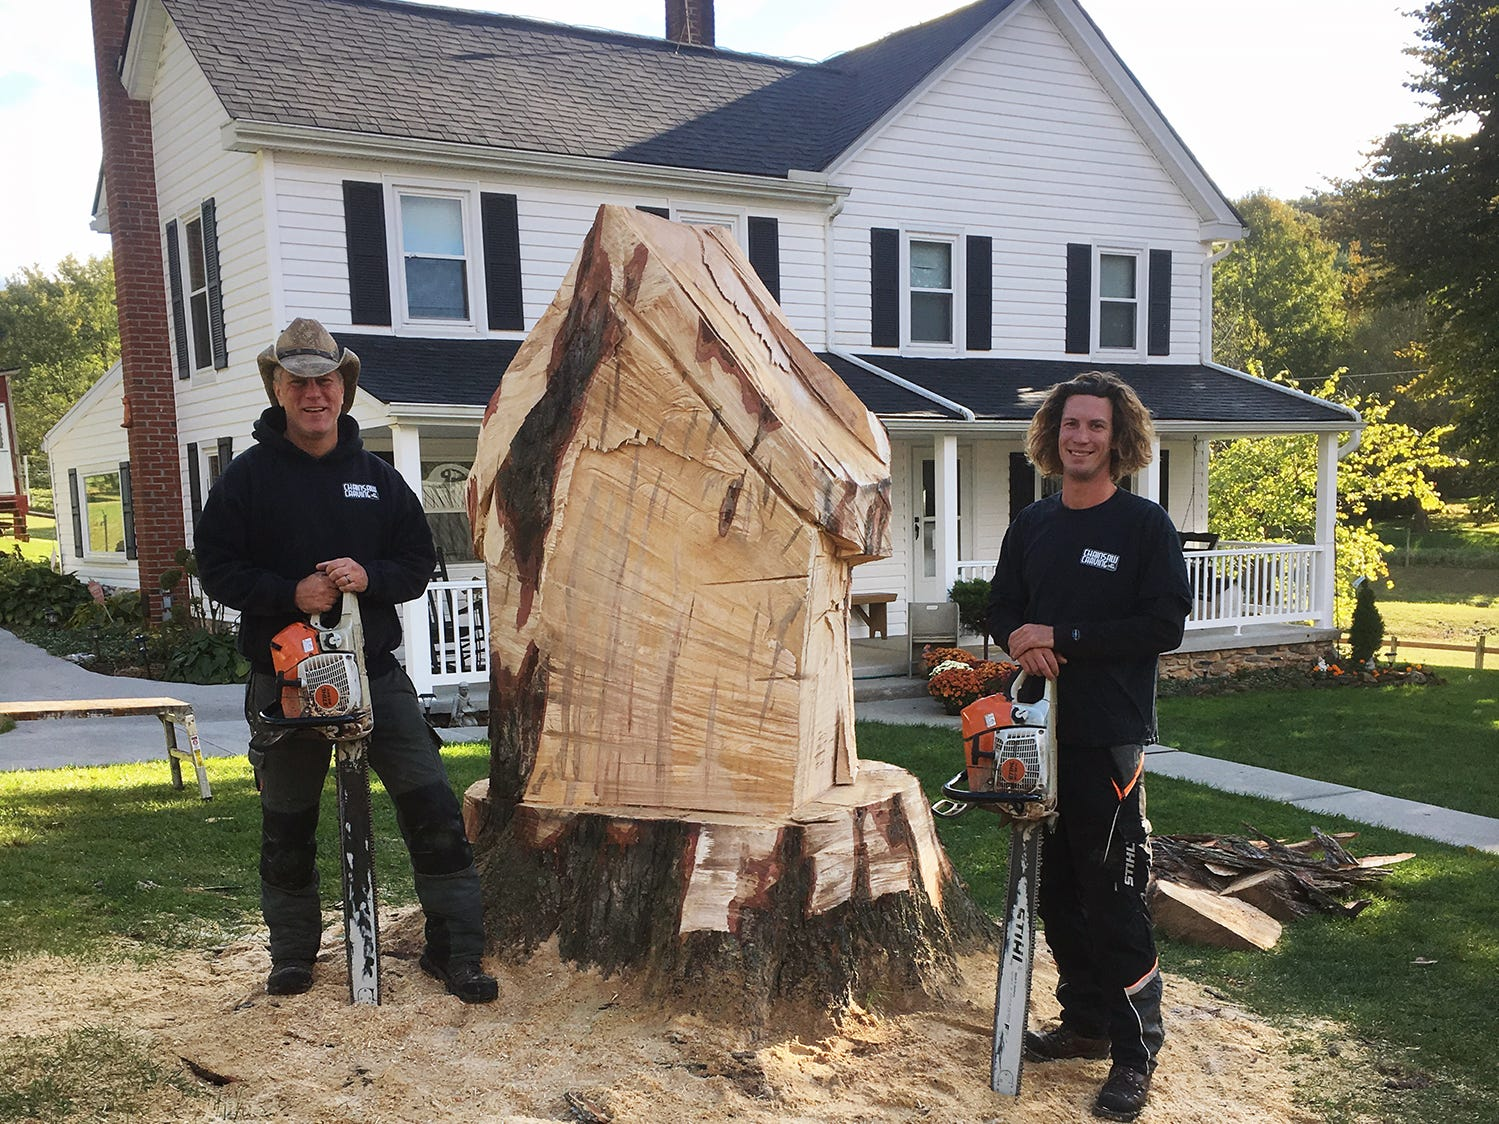 Paul Walco, left, and his son Austin begin trimming the trunk of the old Silver Maple creating the fairy house at the Teaching Museum for the Fiber Arts & Textiles near Winterstown. The business Chainsaw Carving by Paul is based near Jacobus.